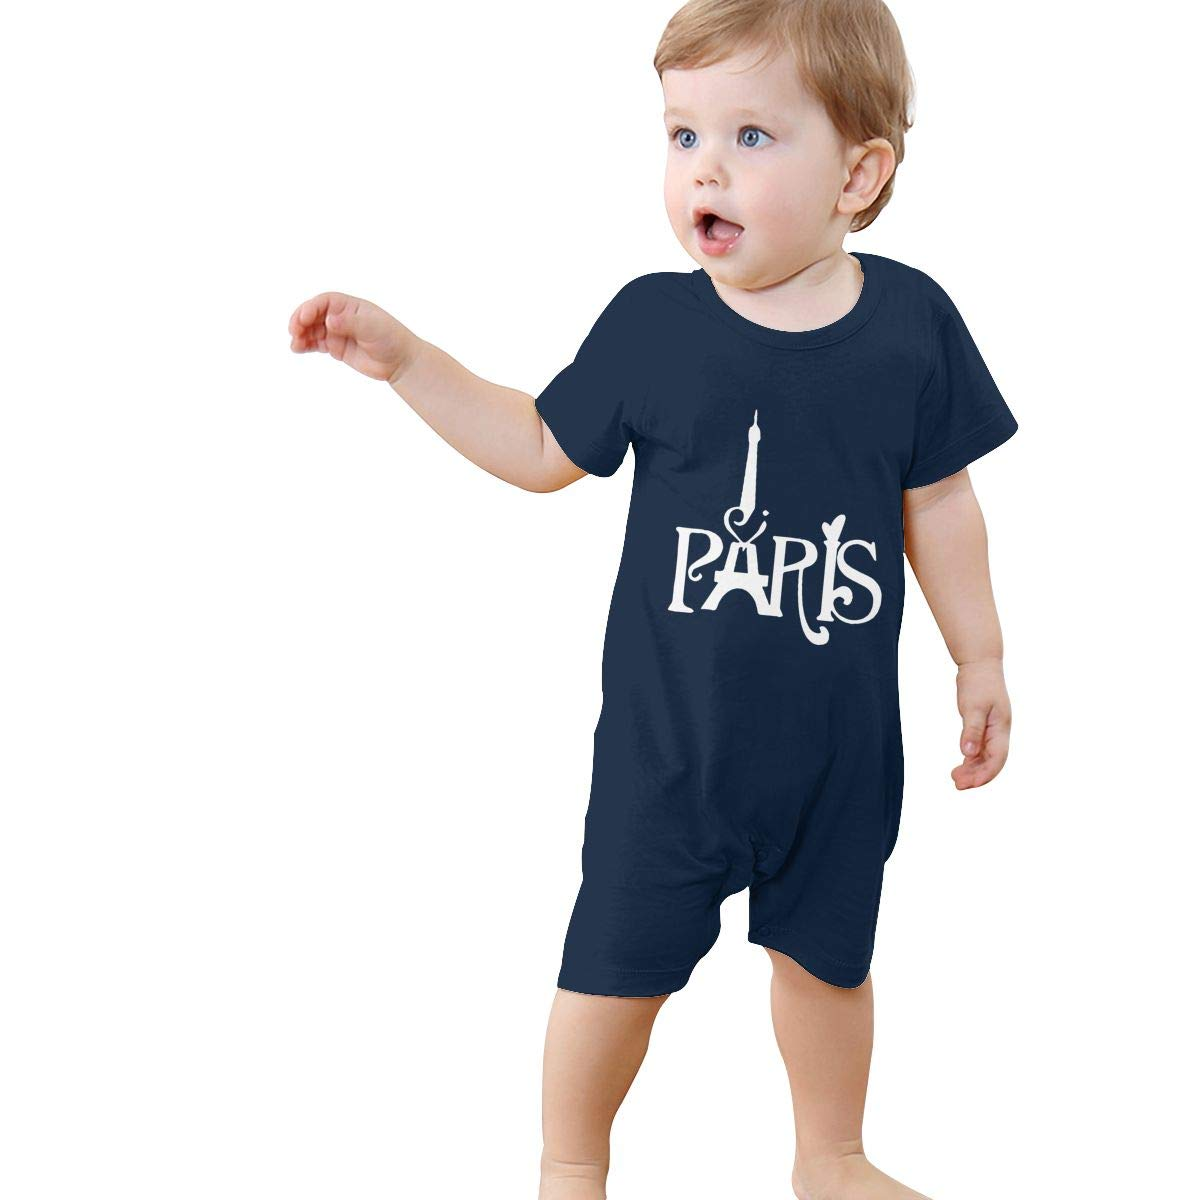 French Paris Eiffel Tower Baby Girl Short Sleeve Bodysuit Infant Romper Jumpsuit 0-24 Months